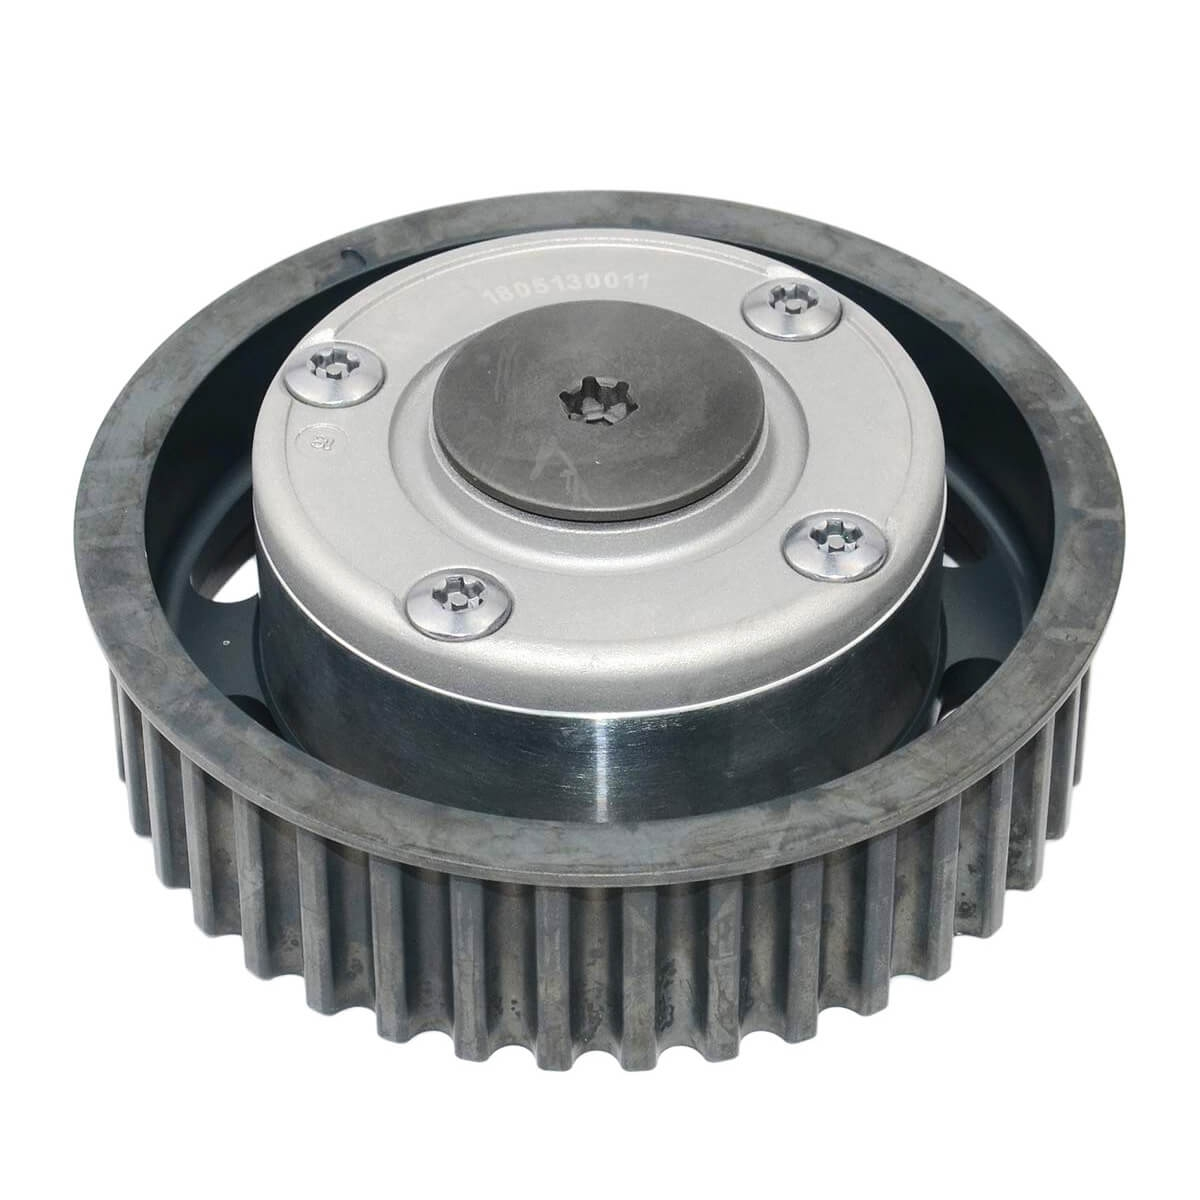 HONDA BEAT Cam Dephaser Pulley